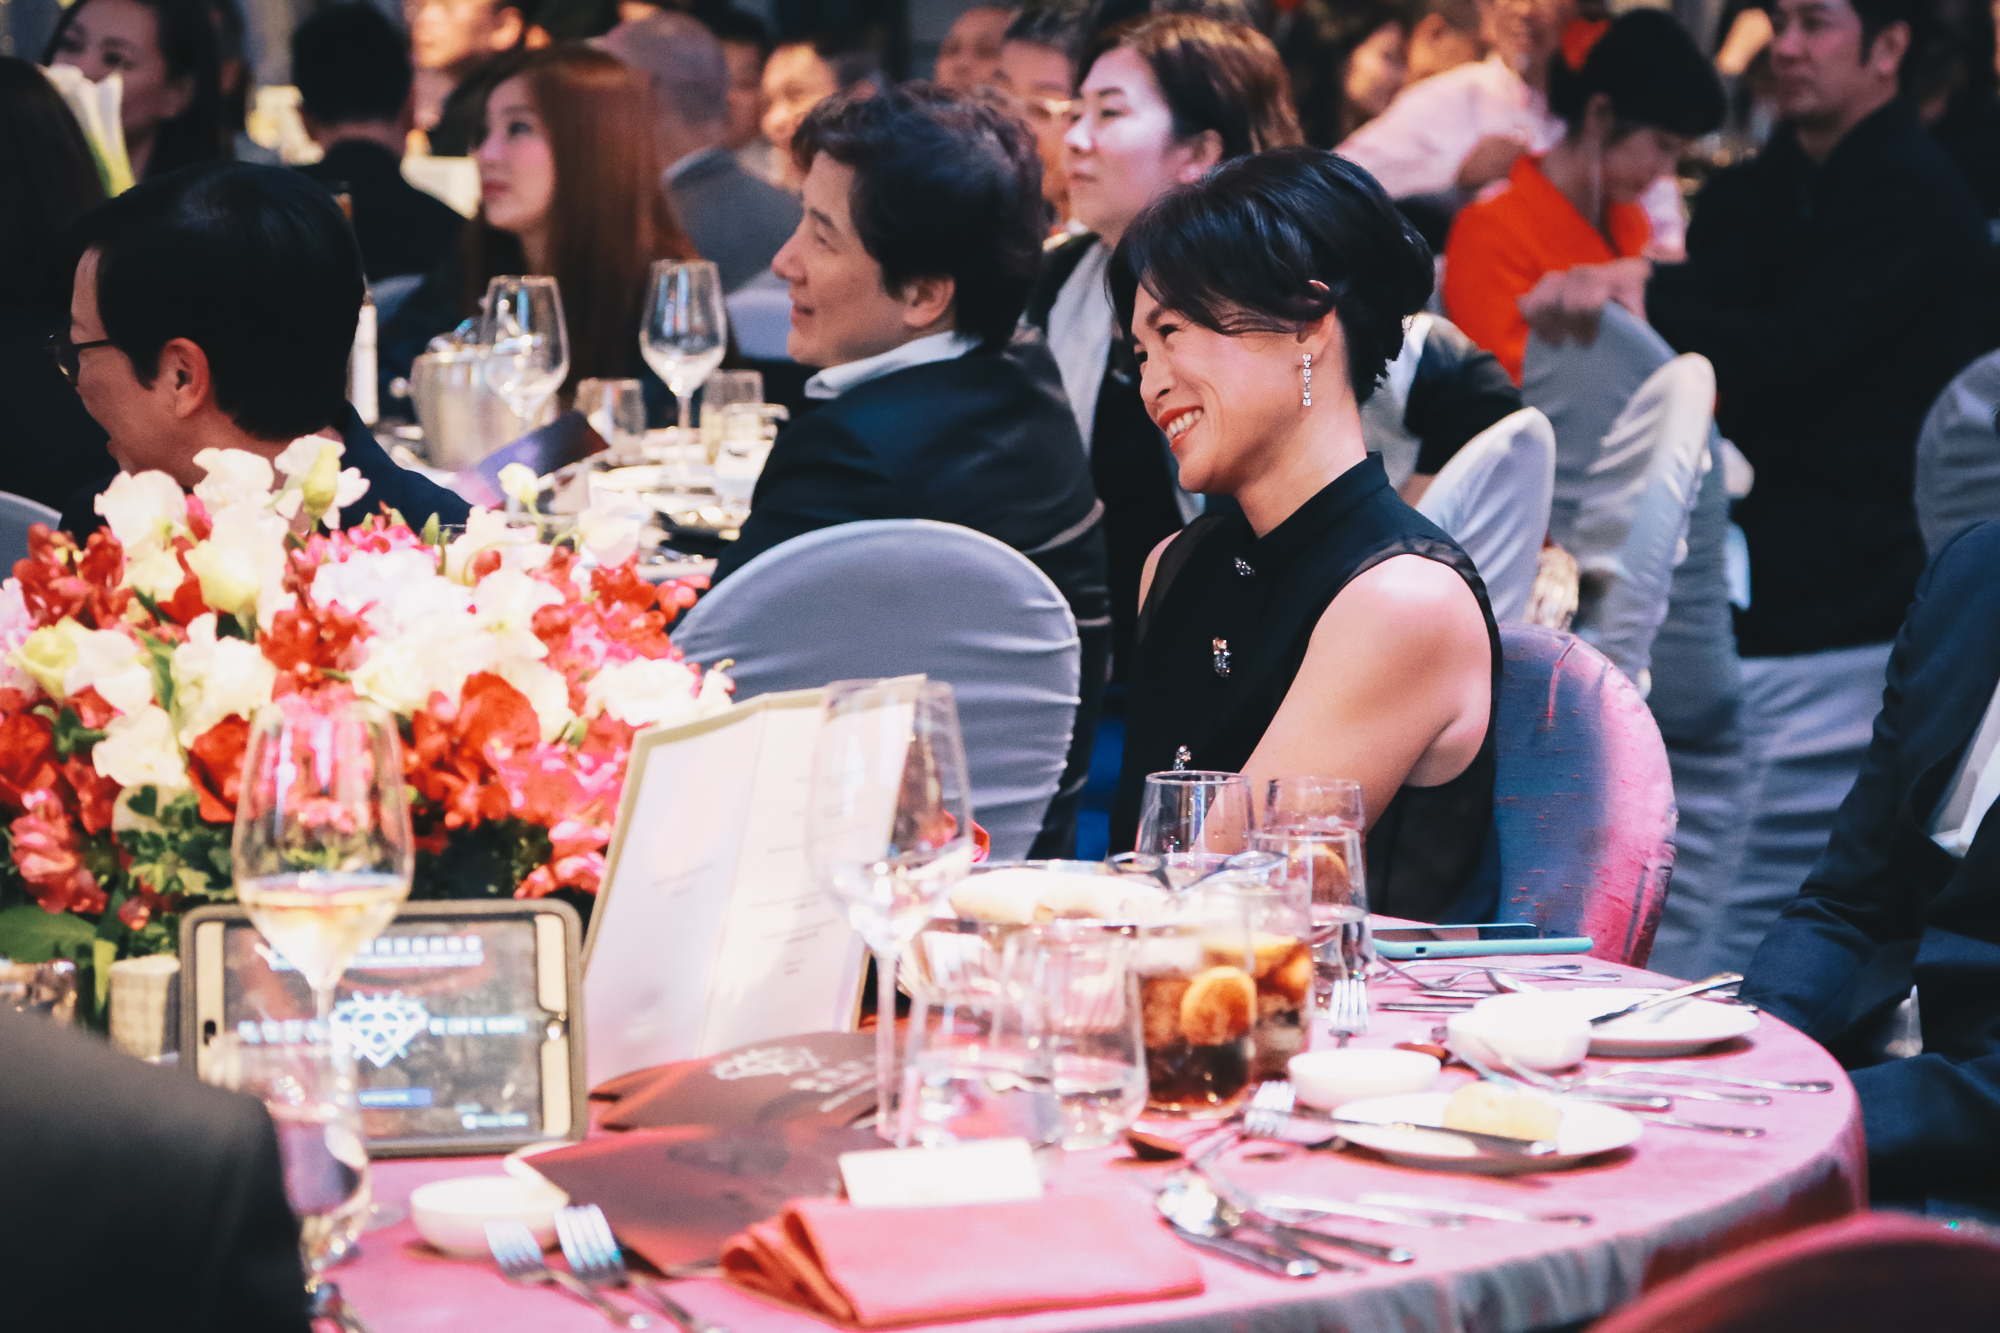 Biglove Alliance 2017 - Dinner-11.jpg